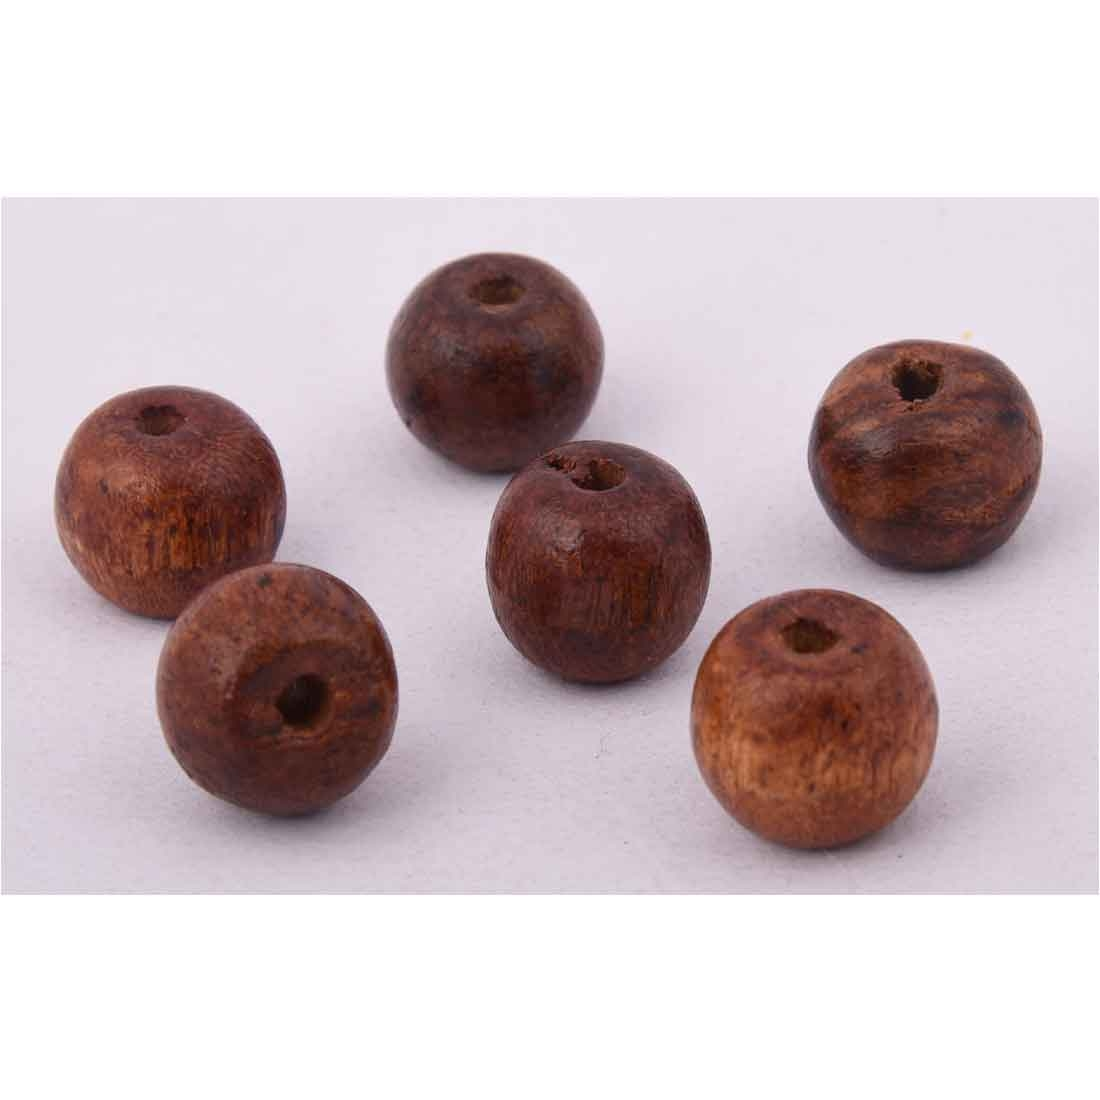 Beads India 1700093 Handcrafted Wooden Beads/Discounts Above 500 pcs